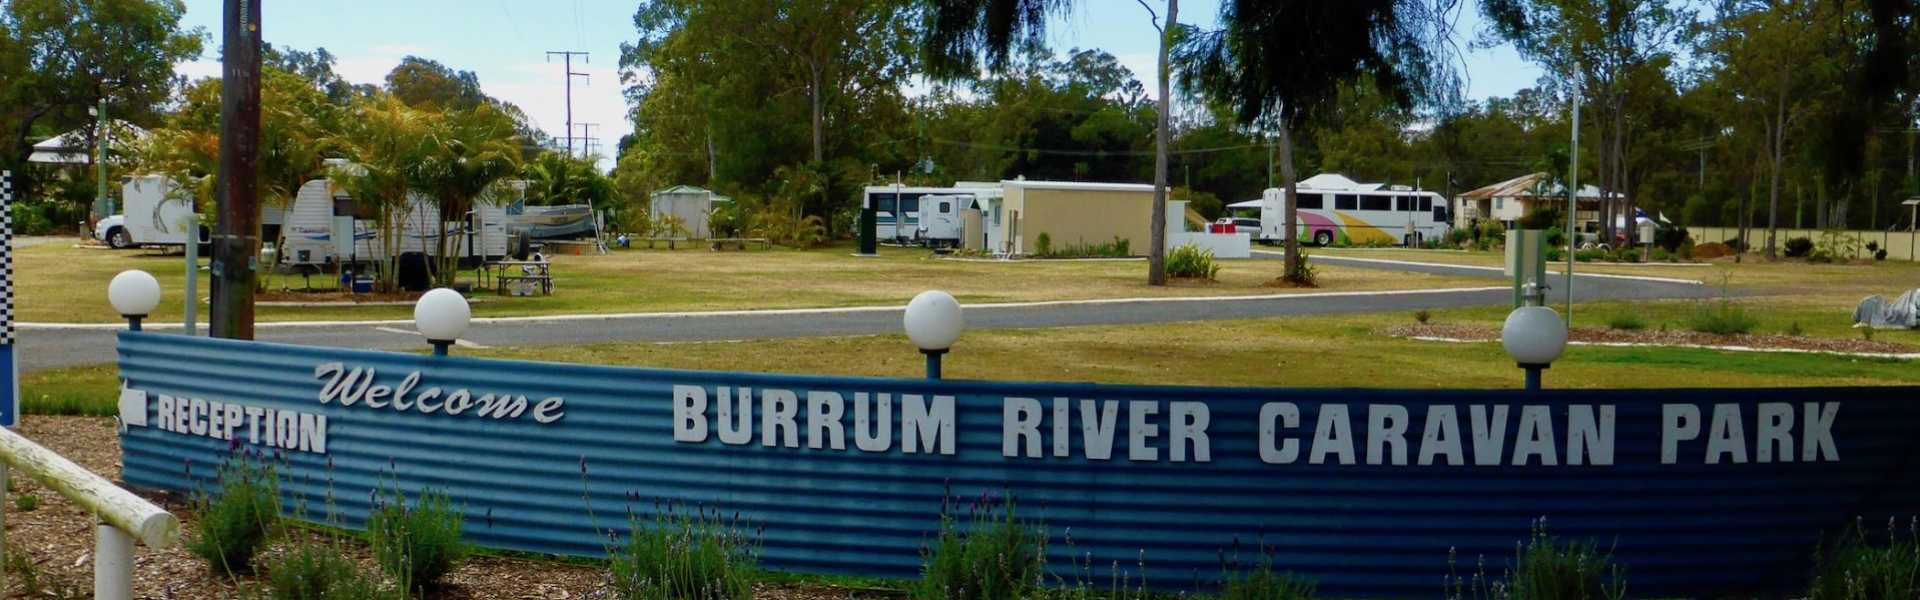 Burrum River Caravan Park, Howard, Kui Parks, Entrance